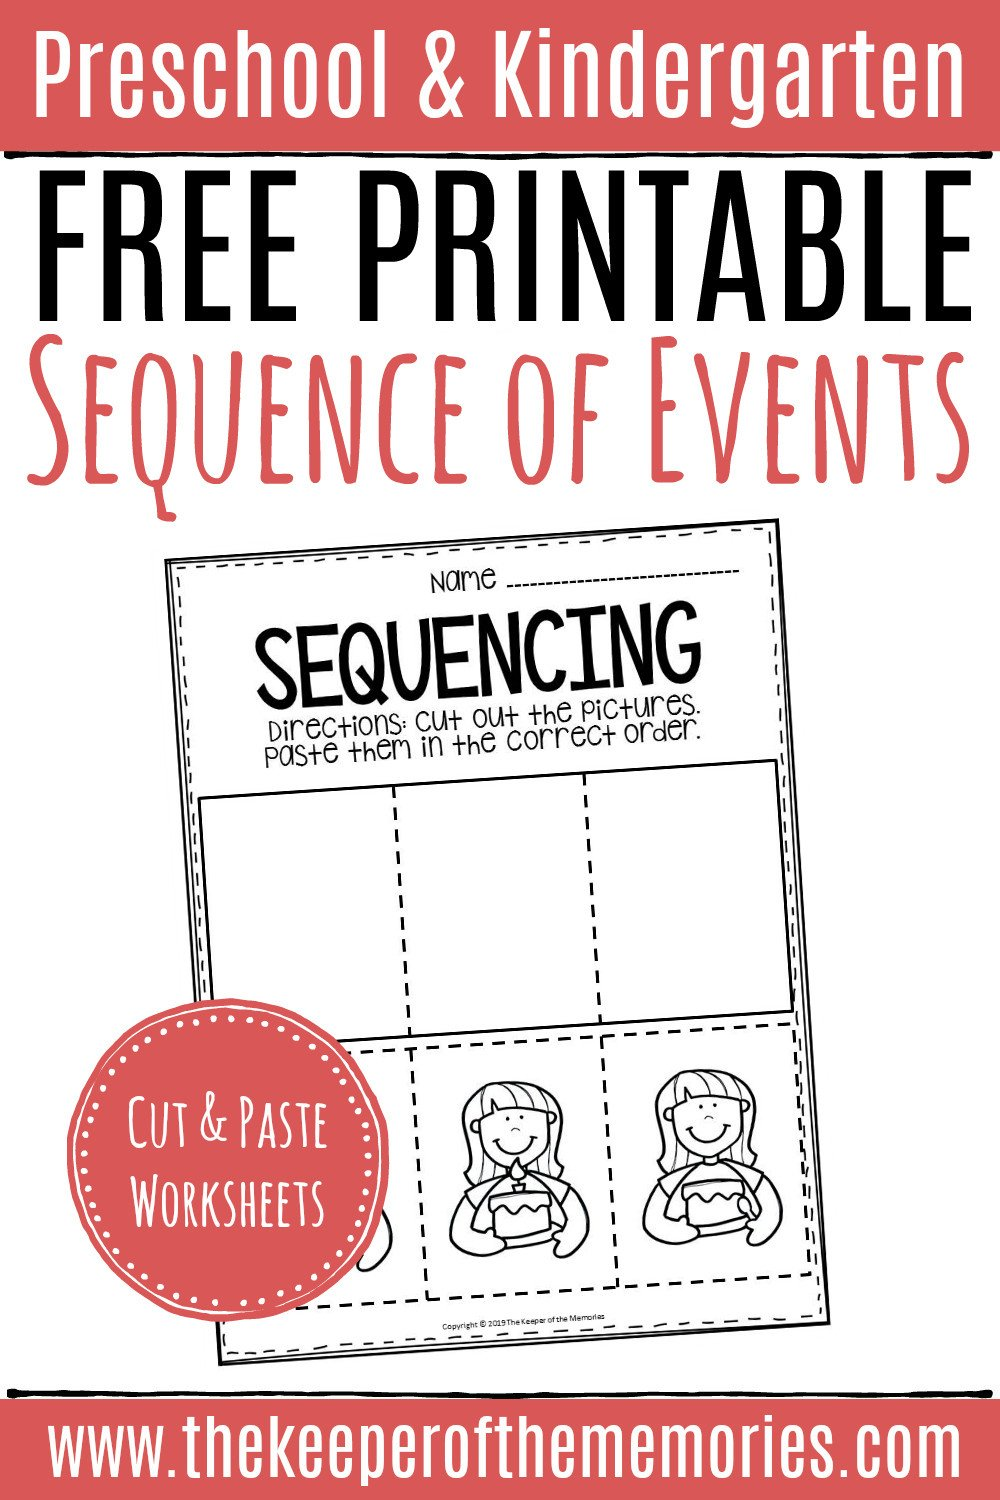 Sequencing events Worksheet Free Printable Sequence Of events Worksheets